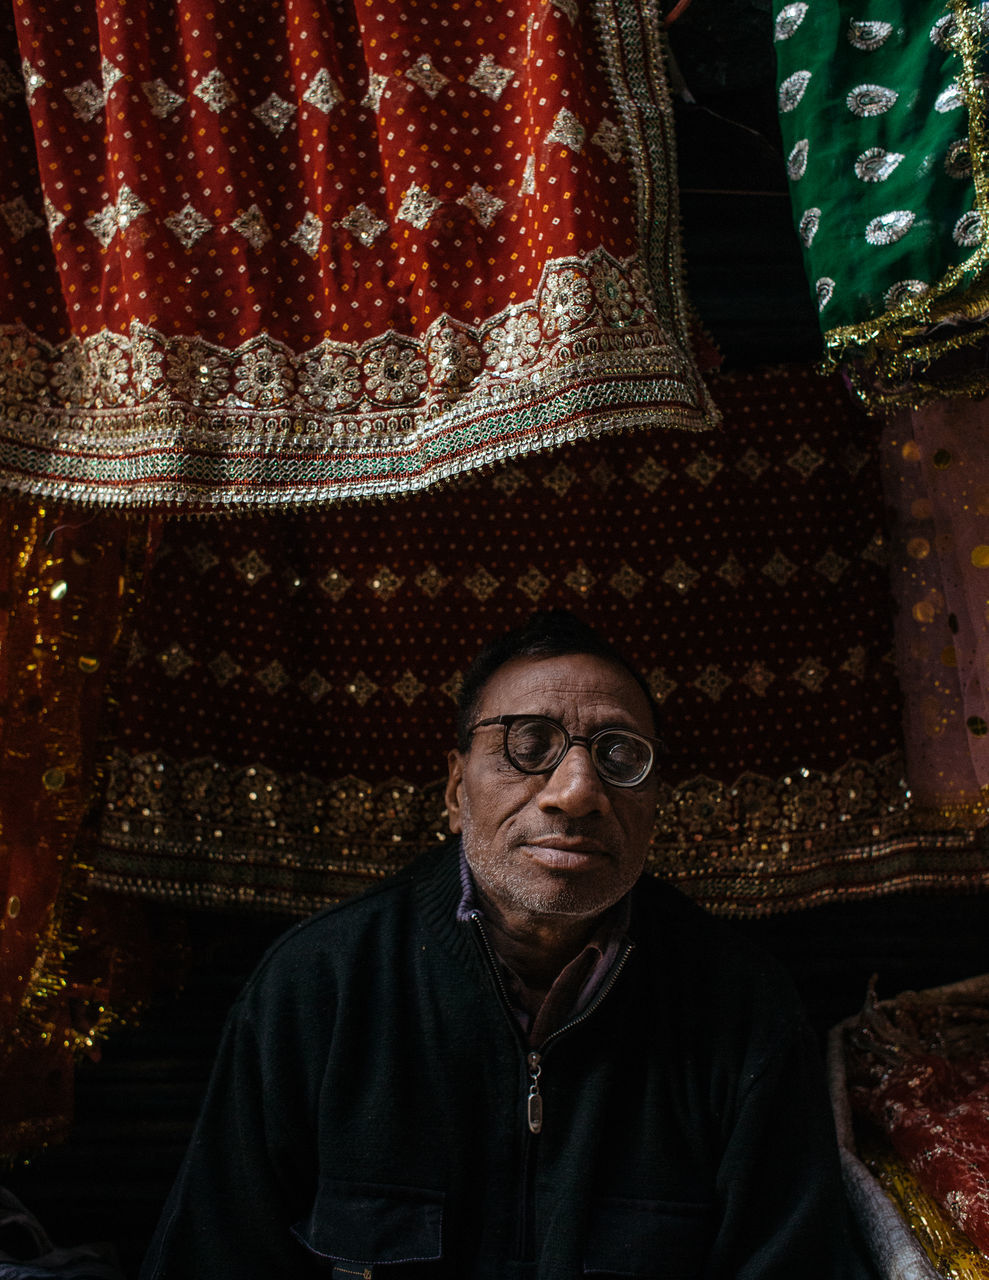 EyeEm Eyes Closed Glasses India Indian Old man Portraits Street portrait colour culture eyeglasses portrait of a man portrait photography real people